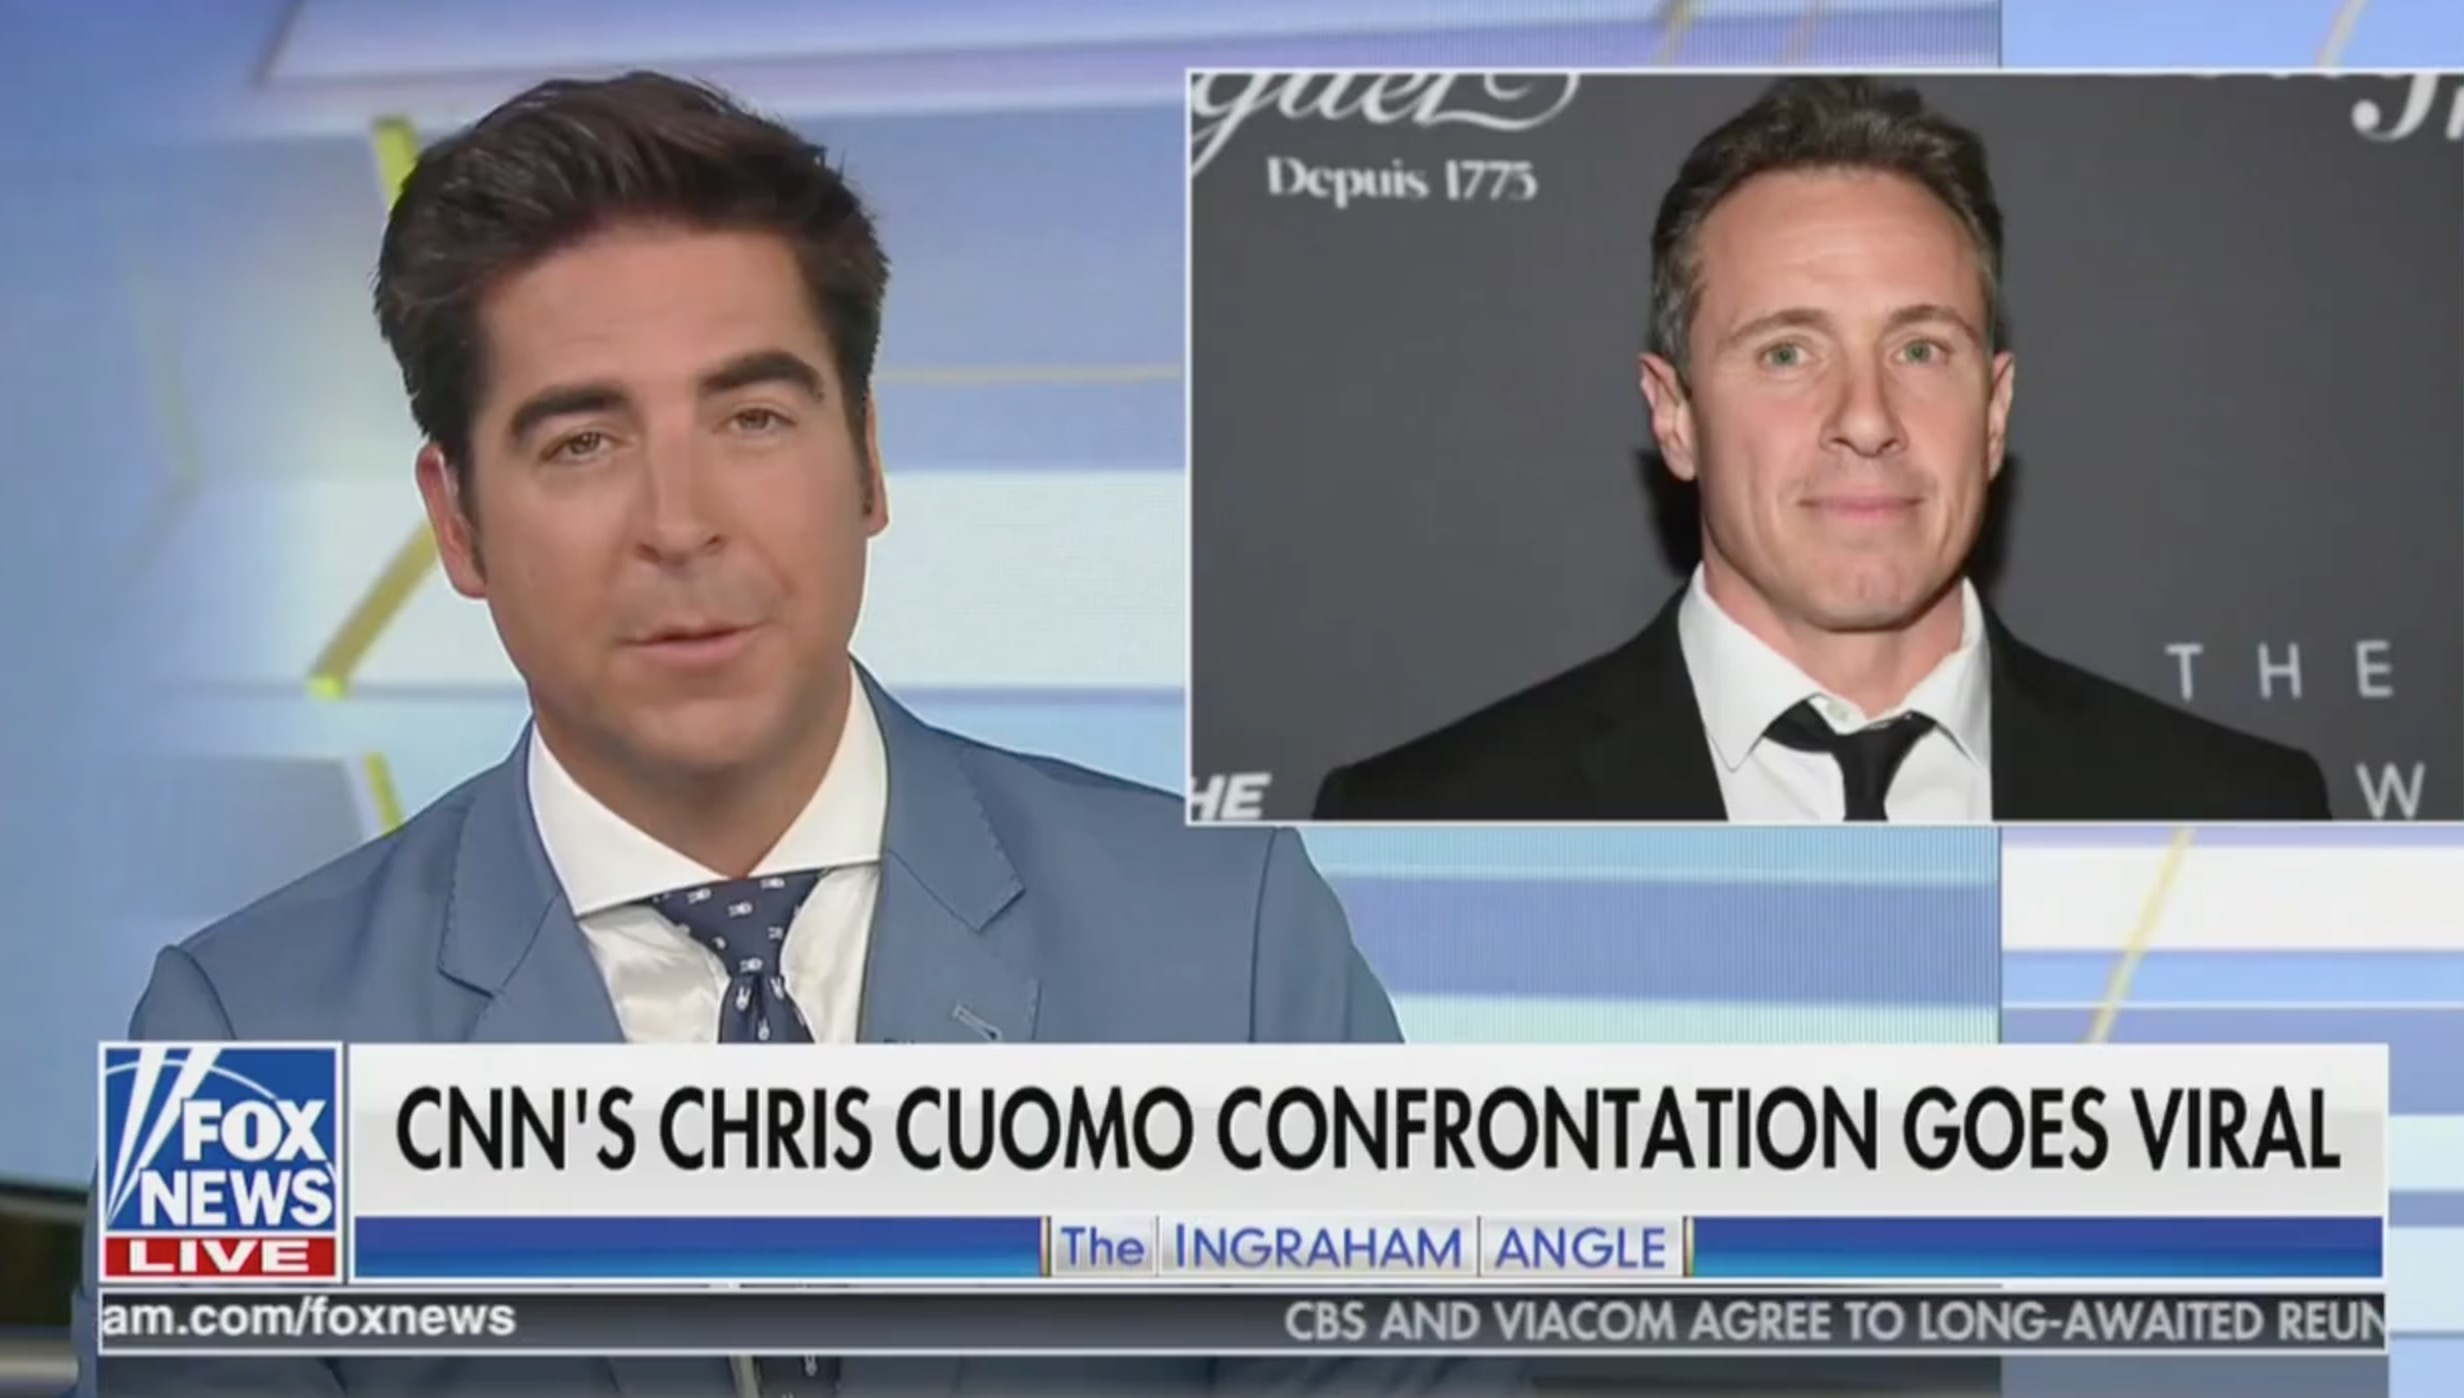 Jesse Watters Accuses Chris Cuomo, CNN of 'Hypocrisy' Over Bar Encounter: They Support Maxine Waters, Antifa